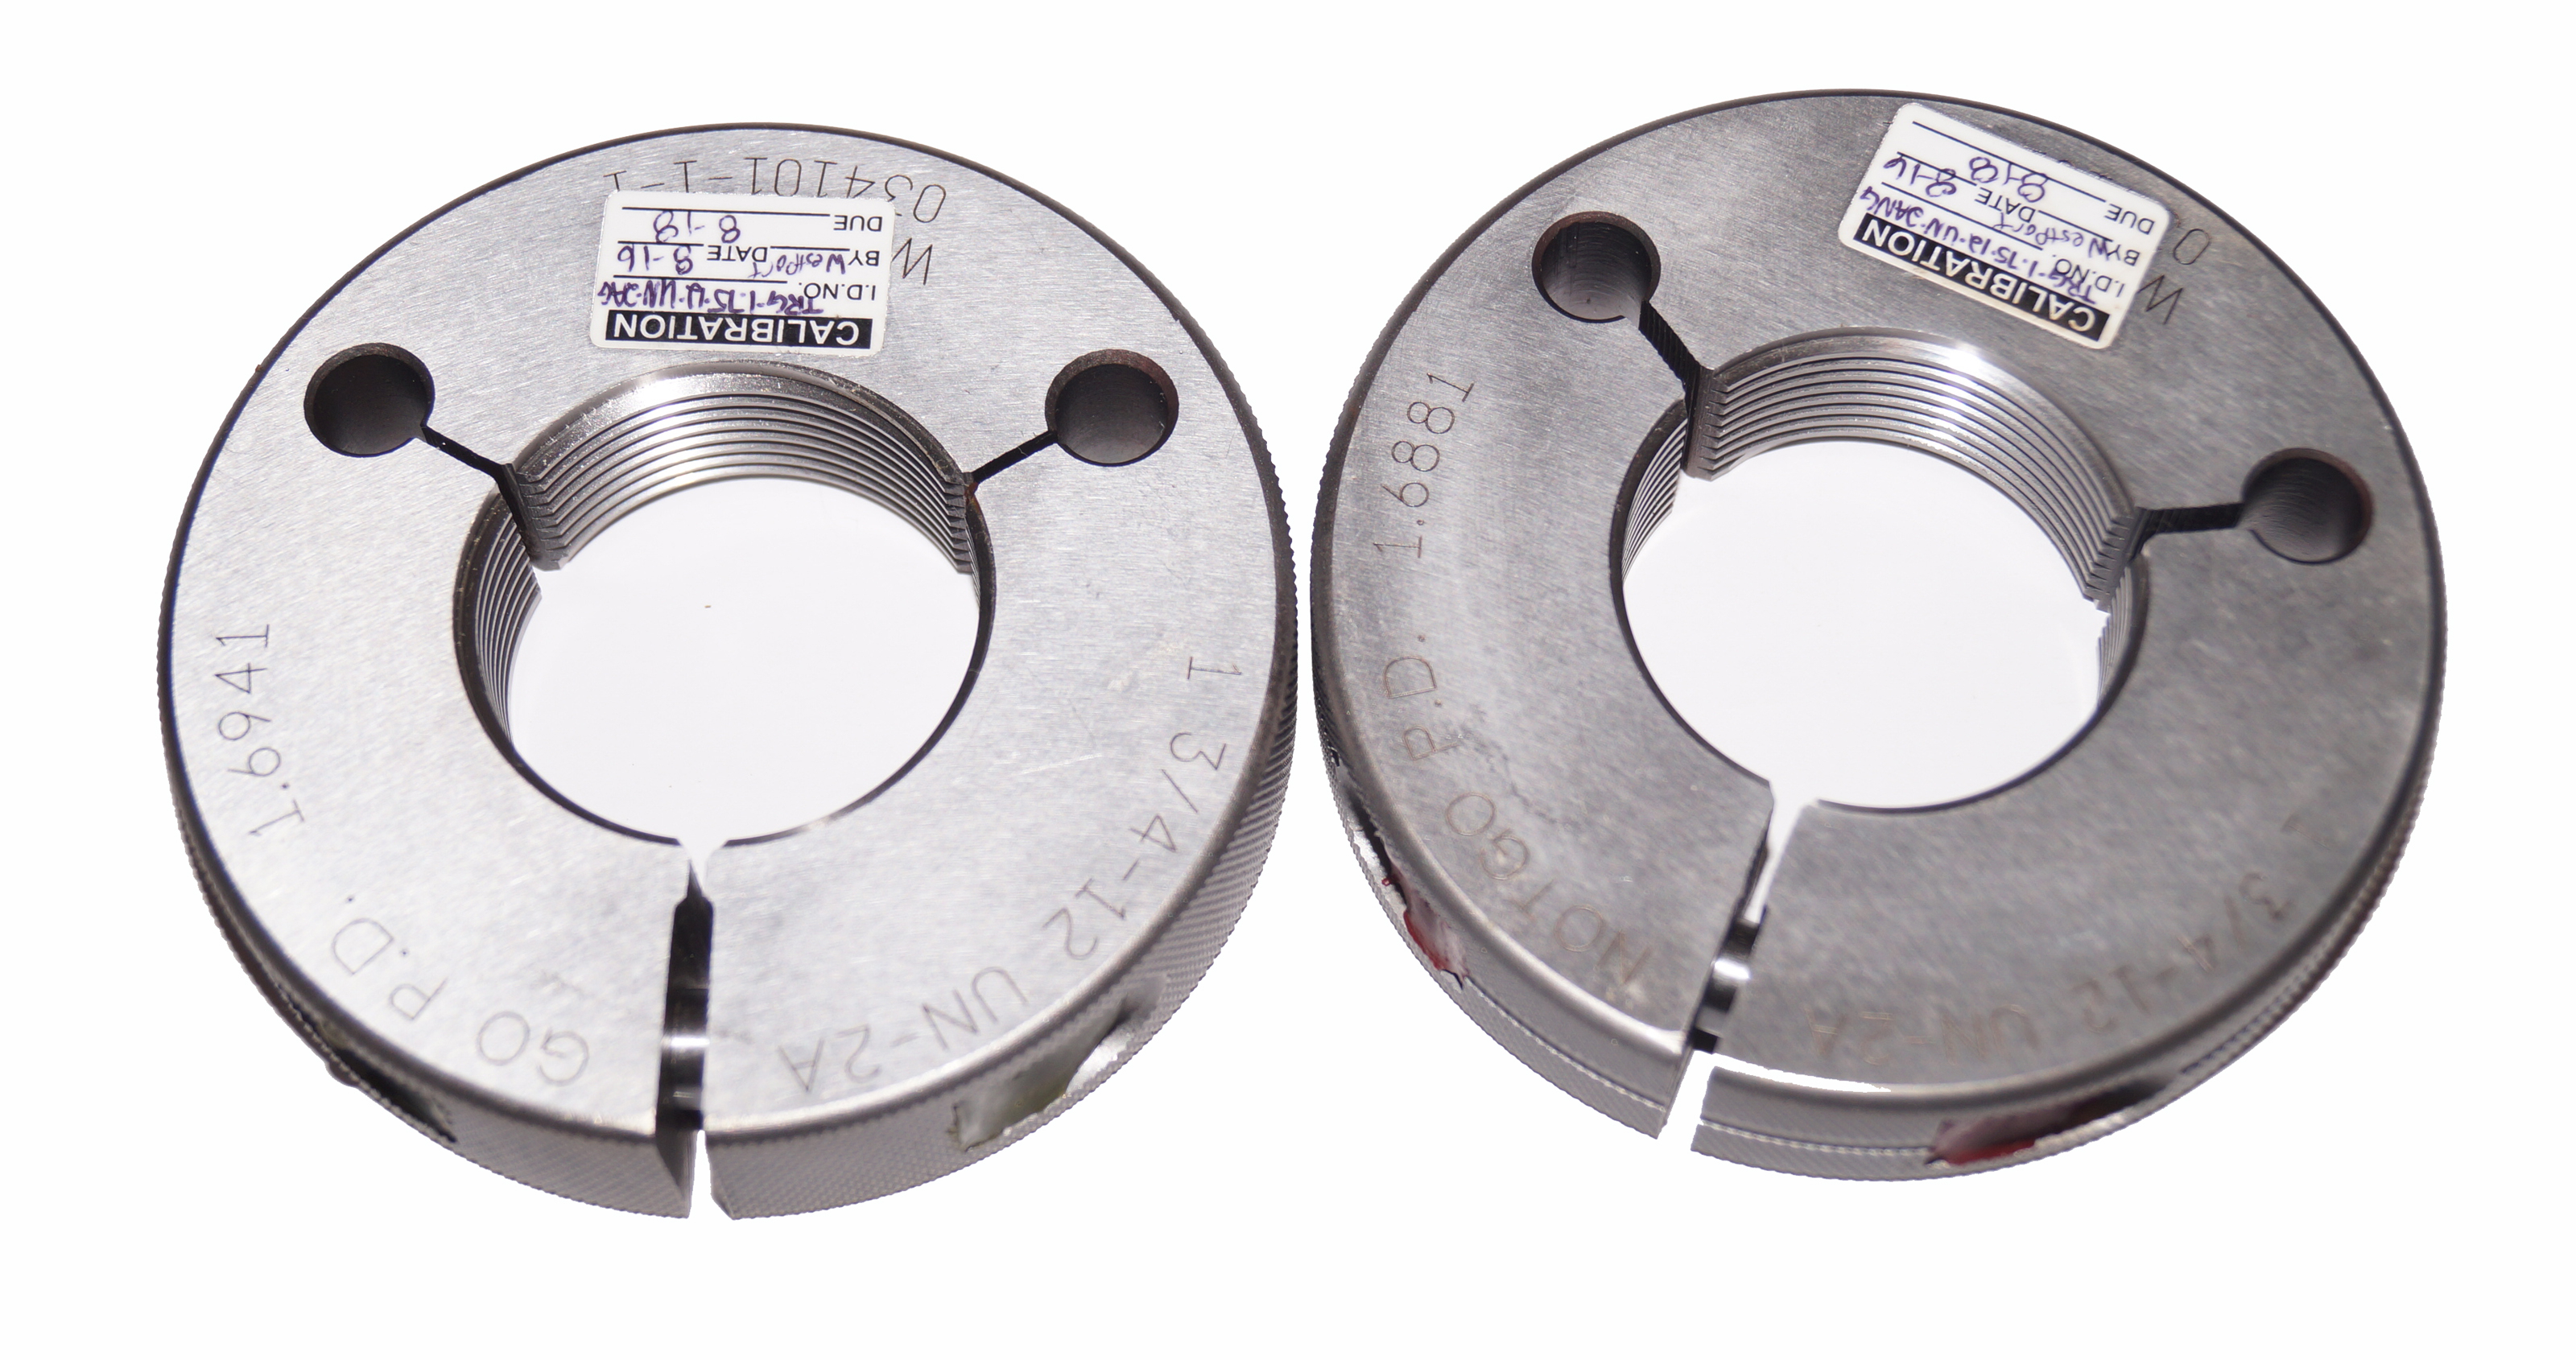 1 3/4 12 UN 2A Thread Ring Gages GO PD: 1.6941 NoGo PD: 1.6881